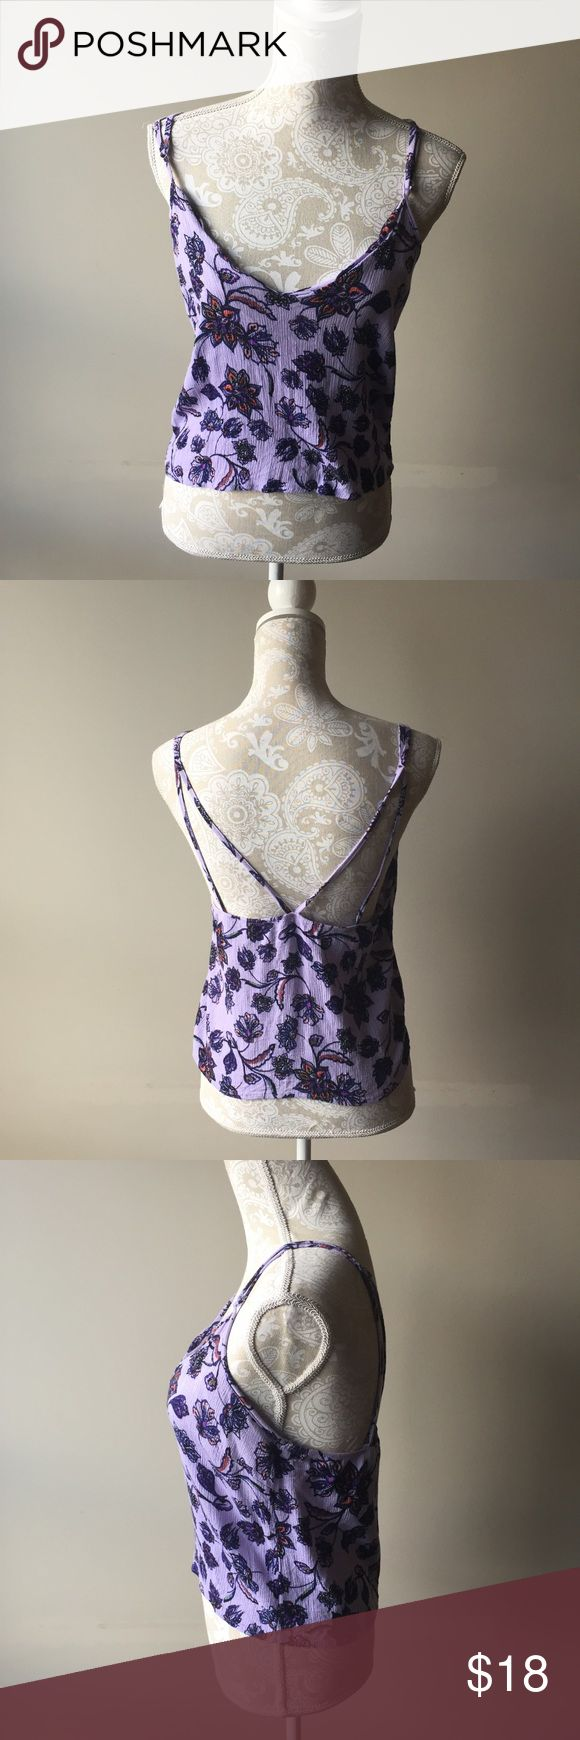 Kendall & Kylie purple strappy top Gently used purple floral tank top with multiple adjustable straps. The front neckline is scalloped. PacSun Tops Tank Tops